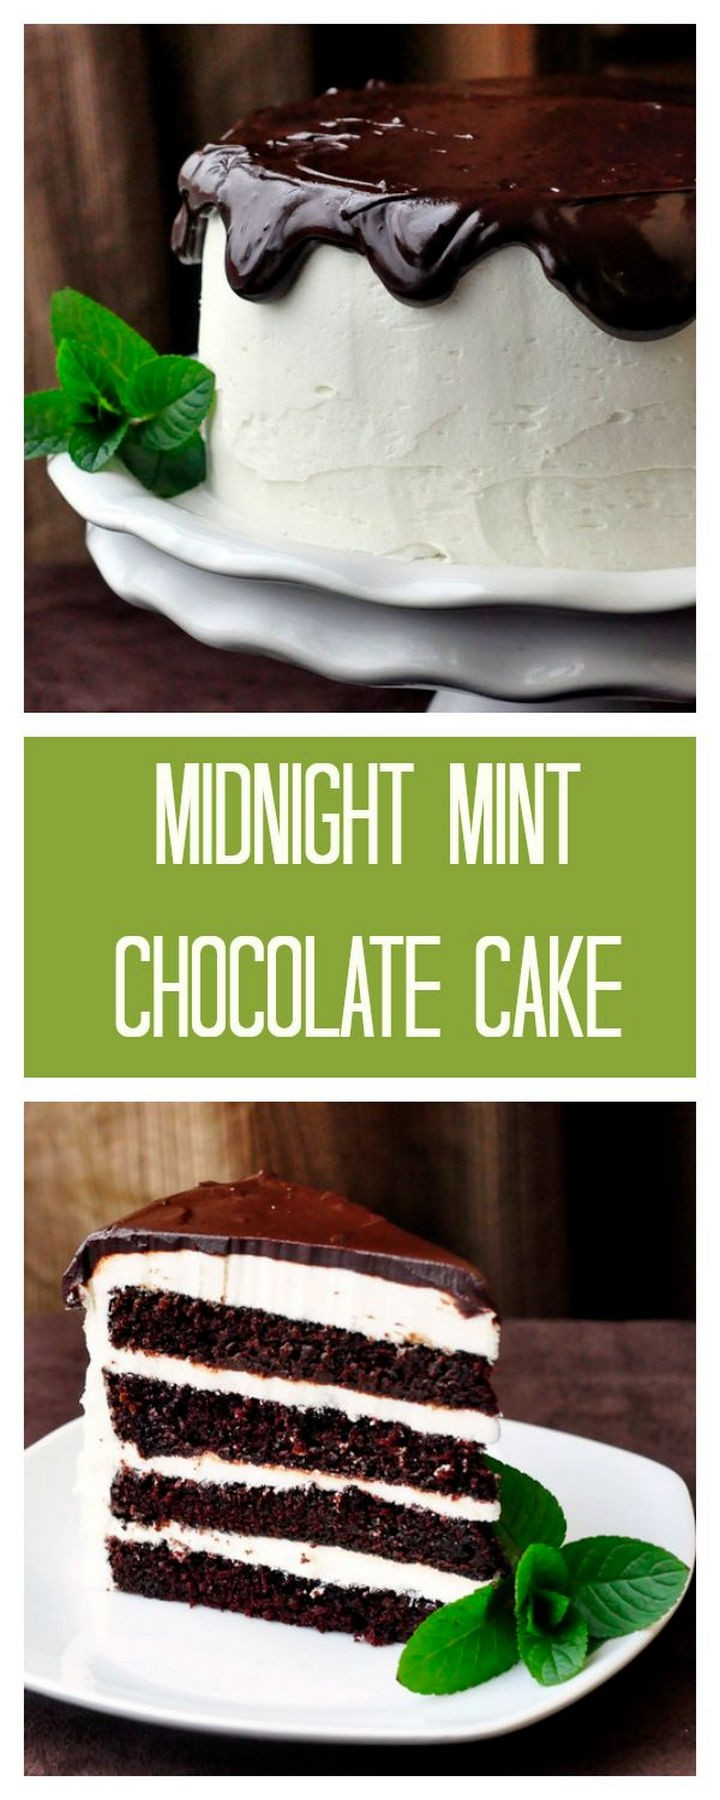 19 Chocolate Cake Recipes That Are Better Than Any Boyfriend - Midnight mint chocolate cake.